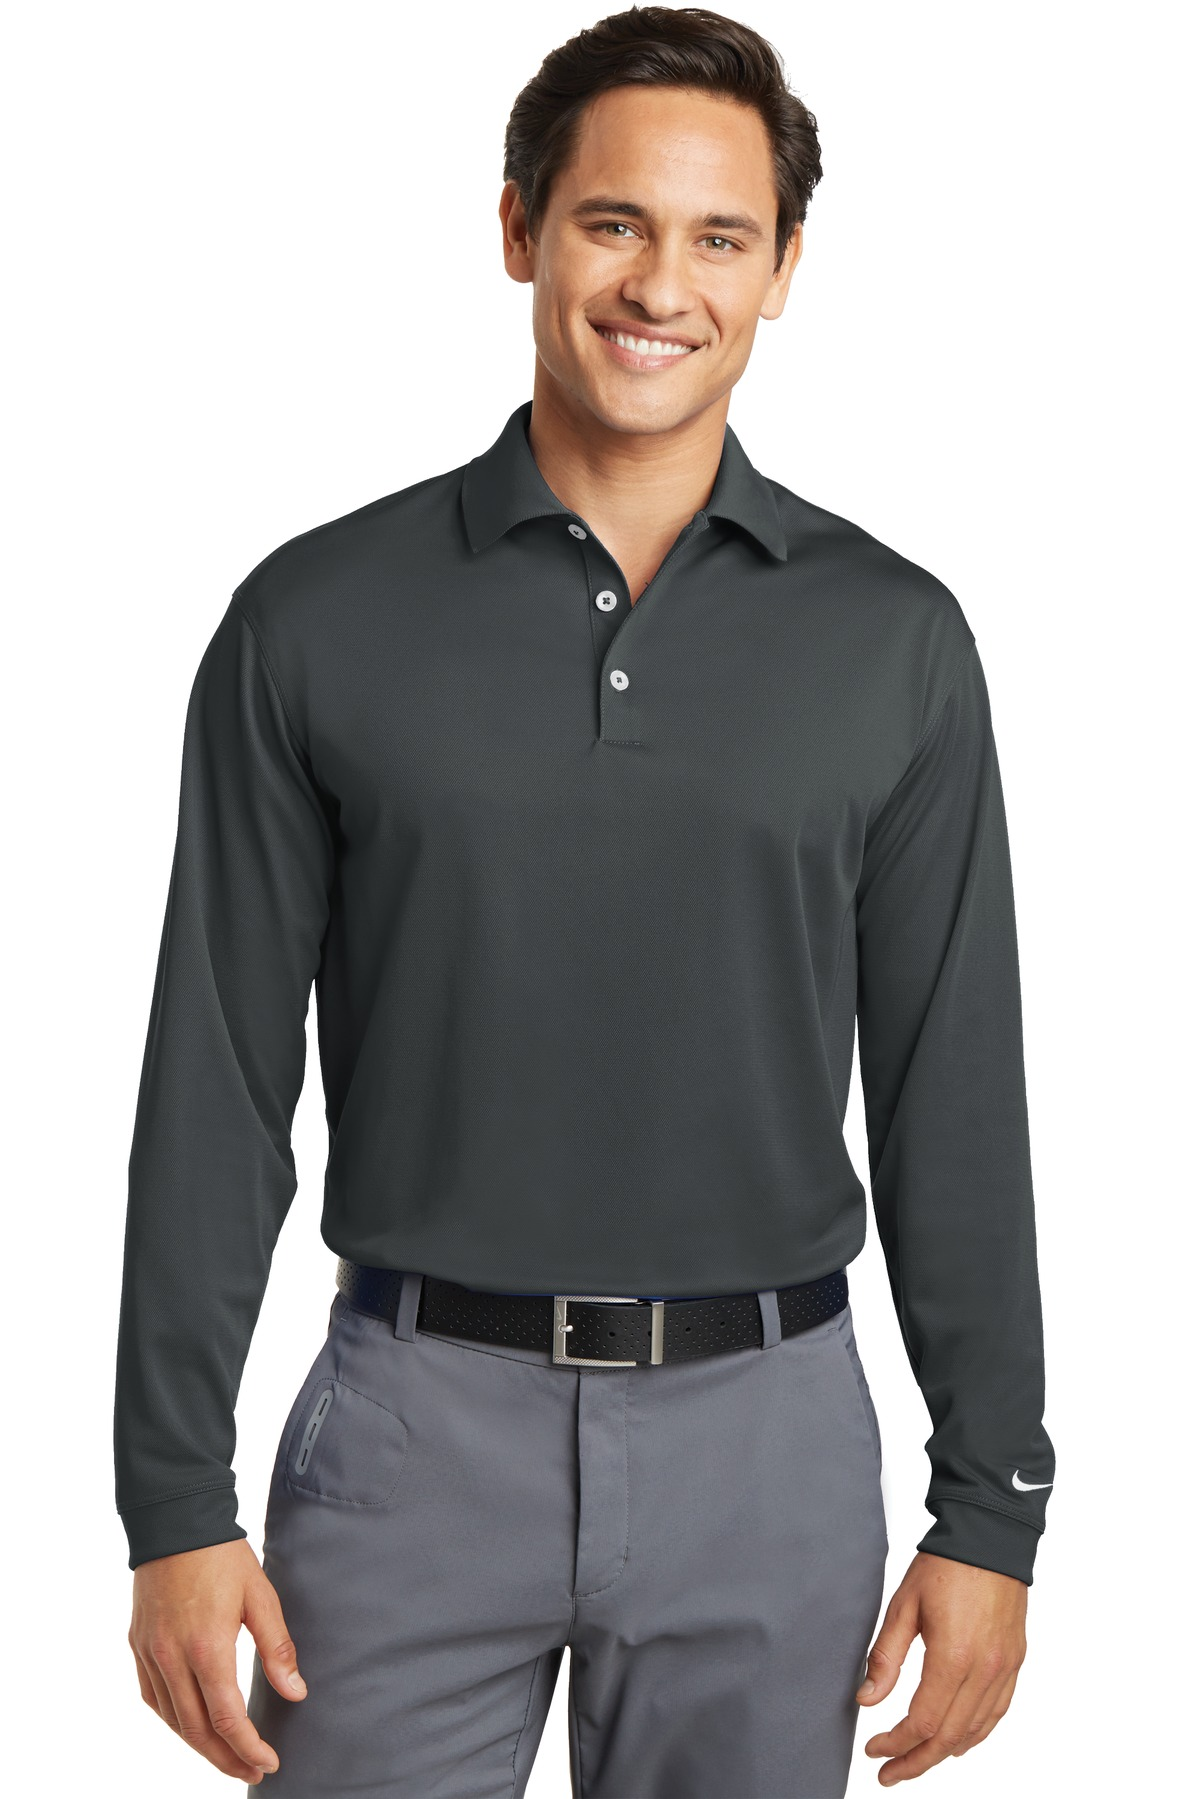 Nike Golf Long Sleeve Dri-FIT Stretch Tech Polo.-Nike